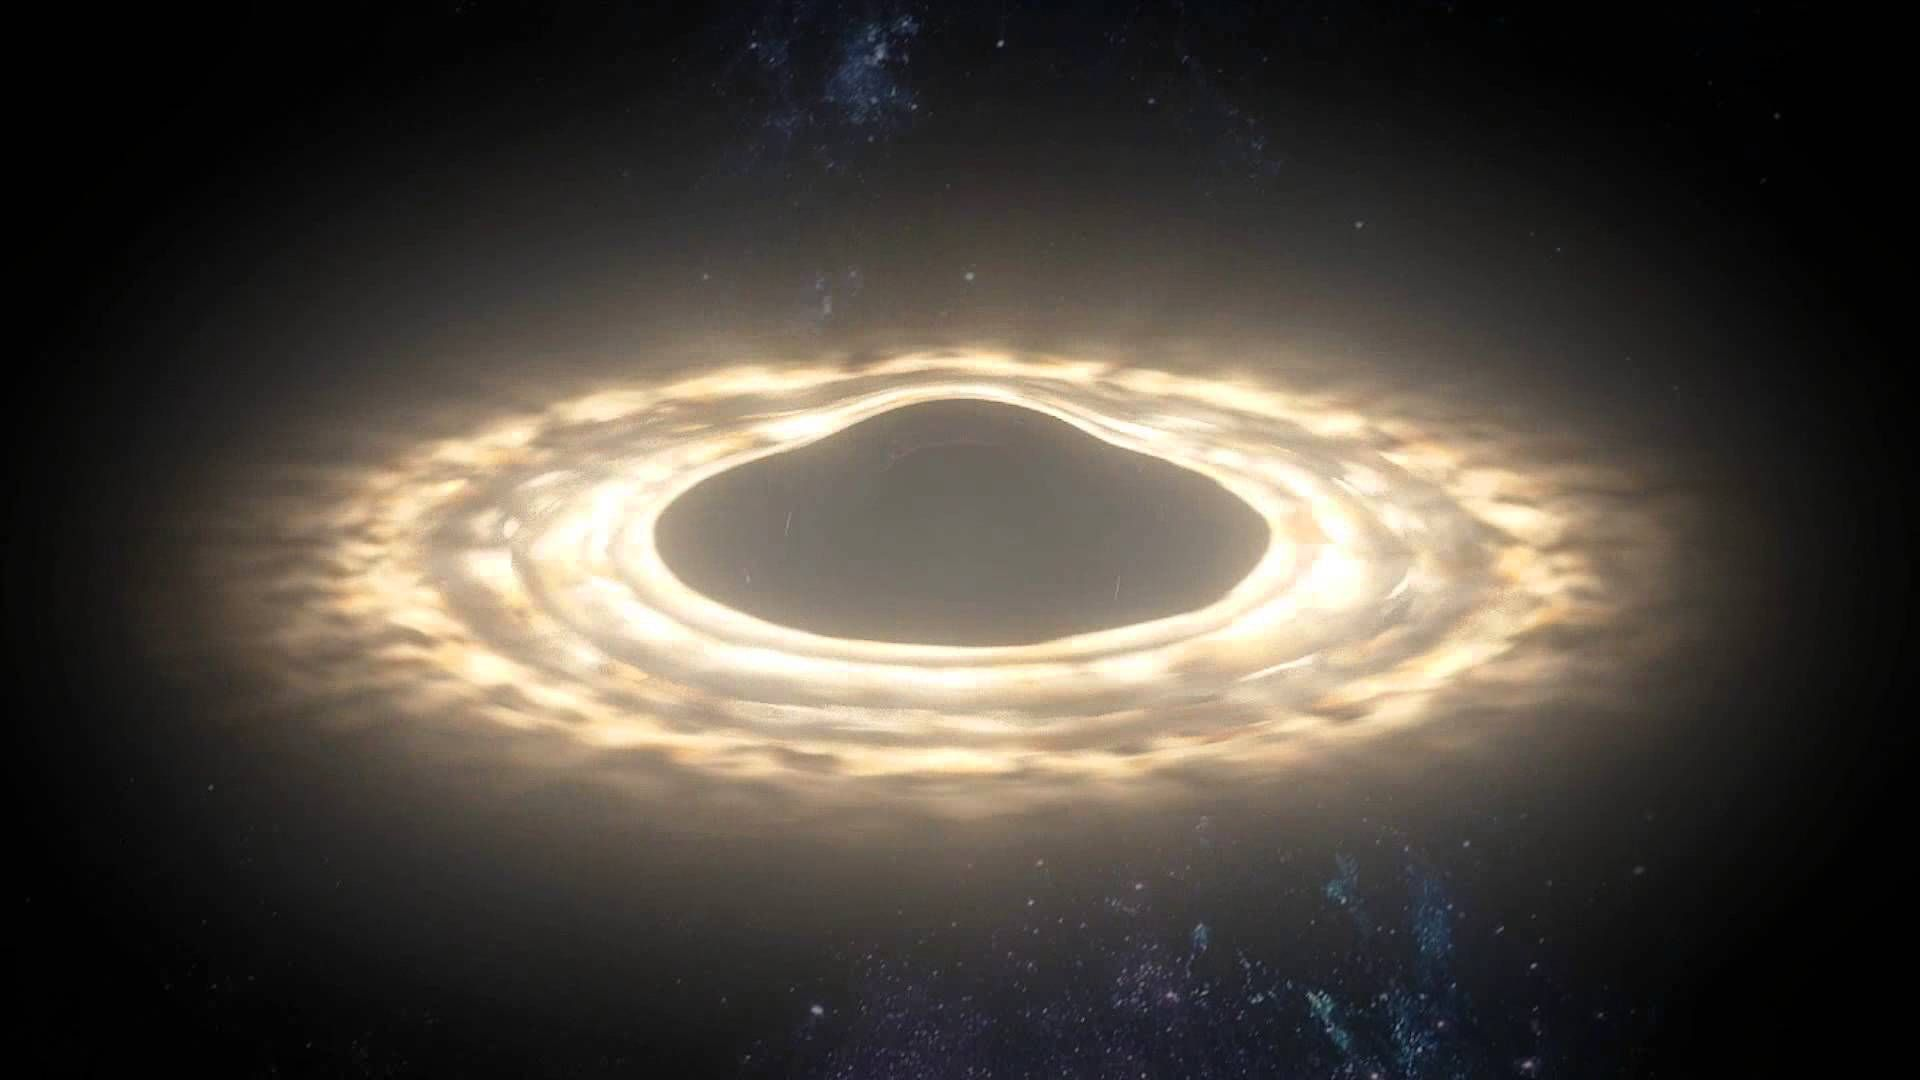 Black Hole Wallpapers 1920x1080